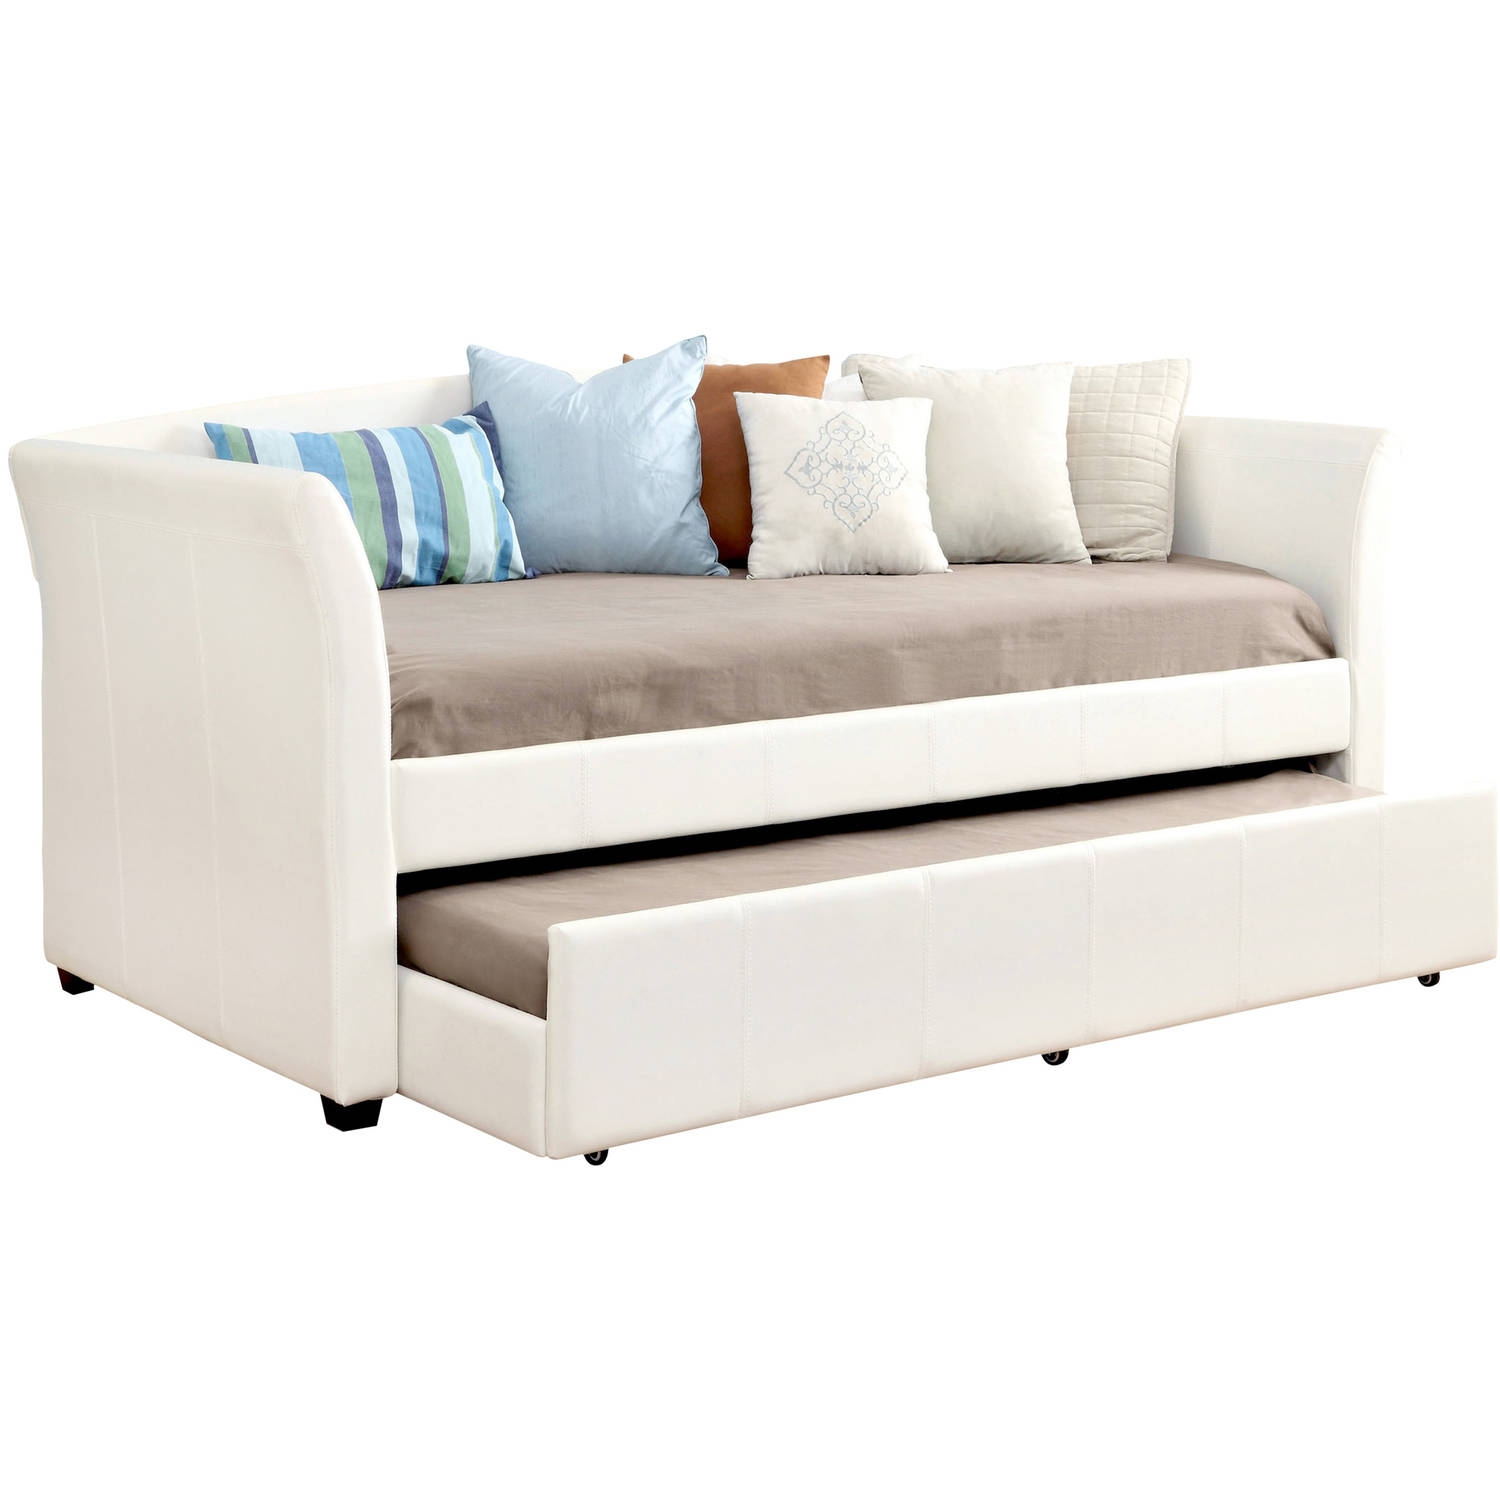 Delmar White Daybed w/Twin Trundle